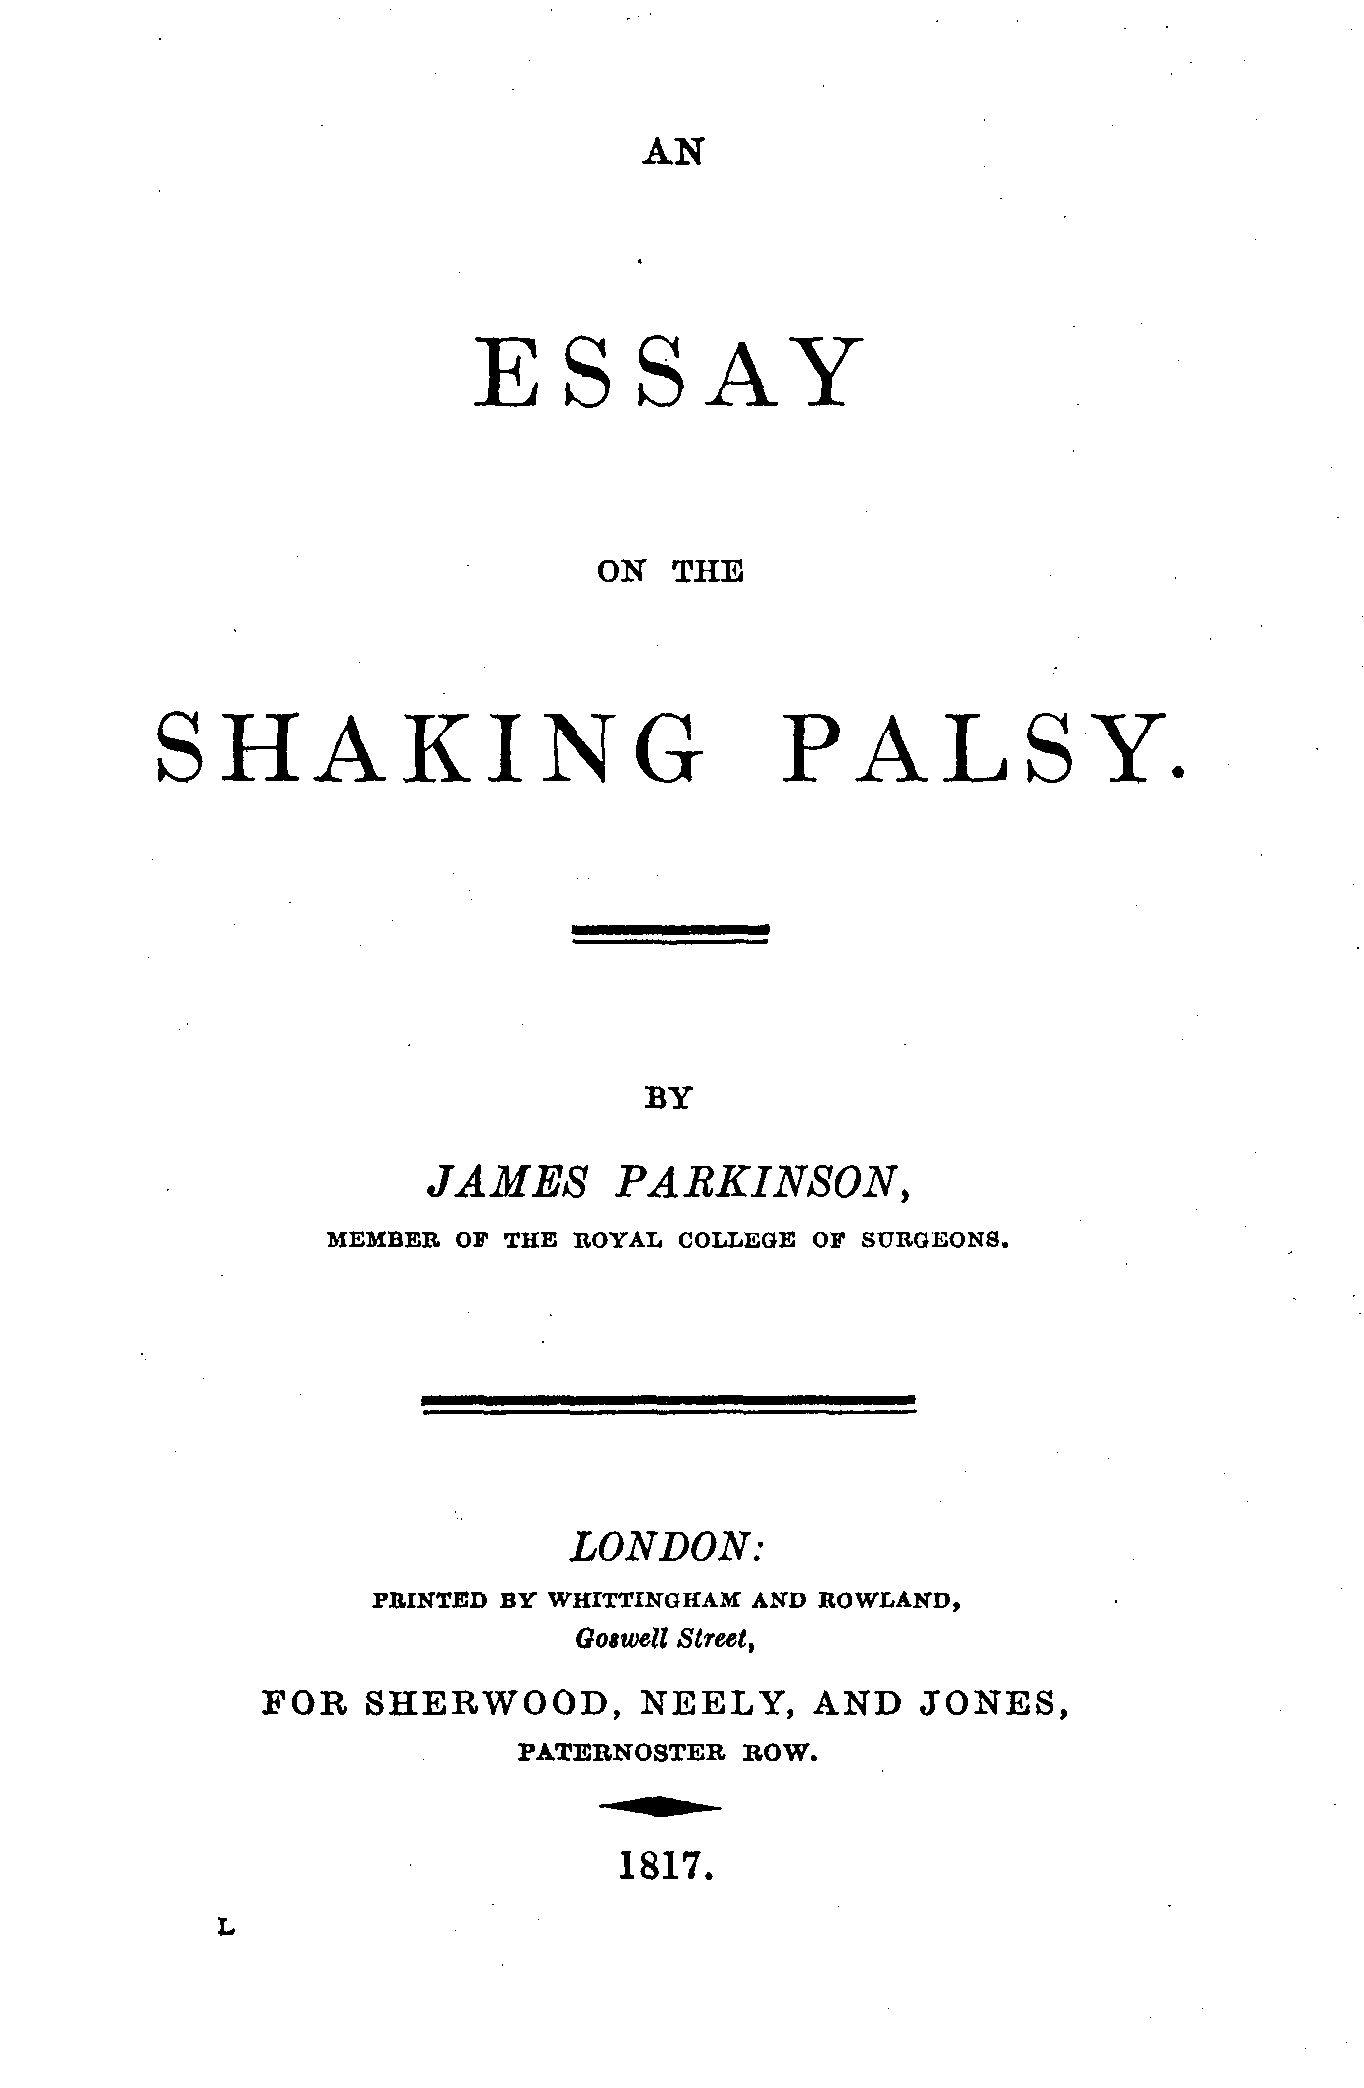 file parkinson an essay on the shaking palsy title page png file parkinson an essay on